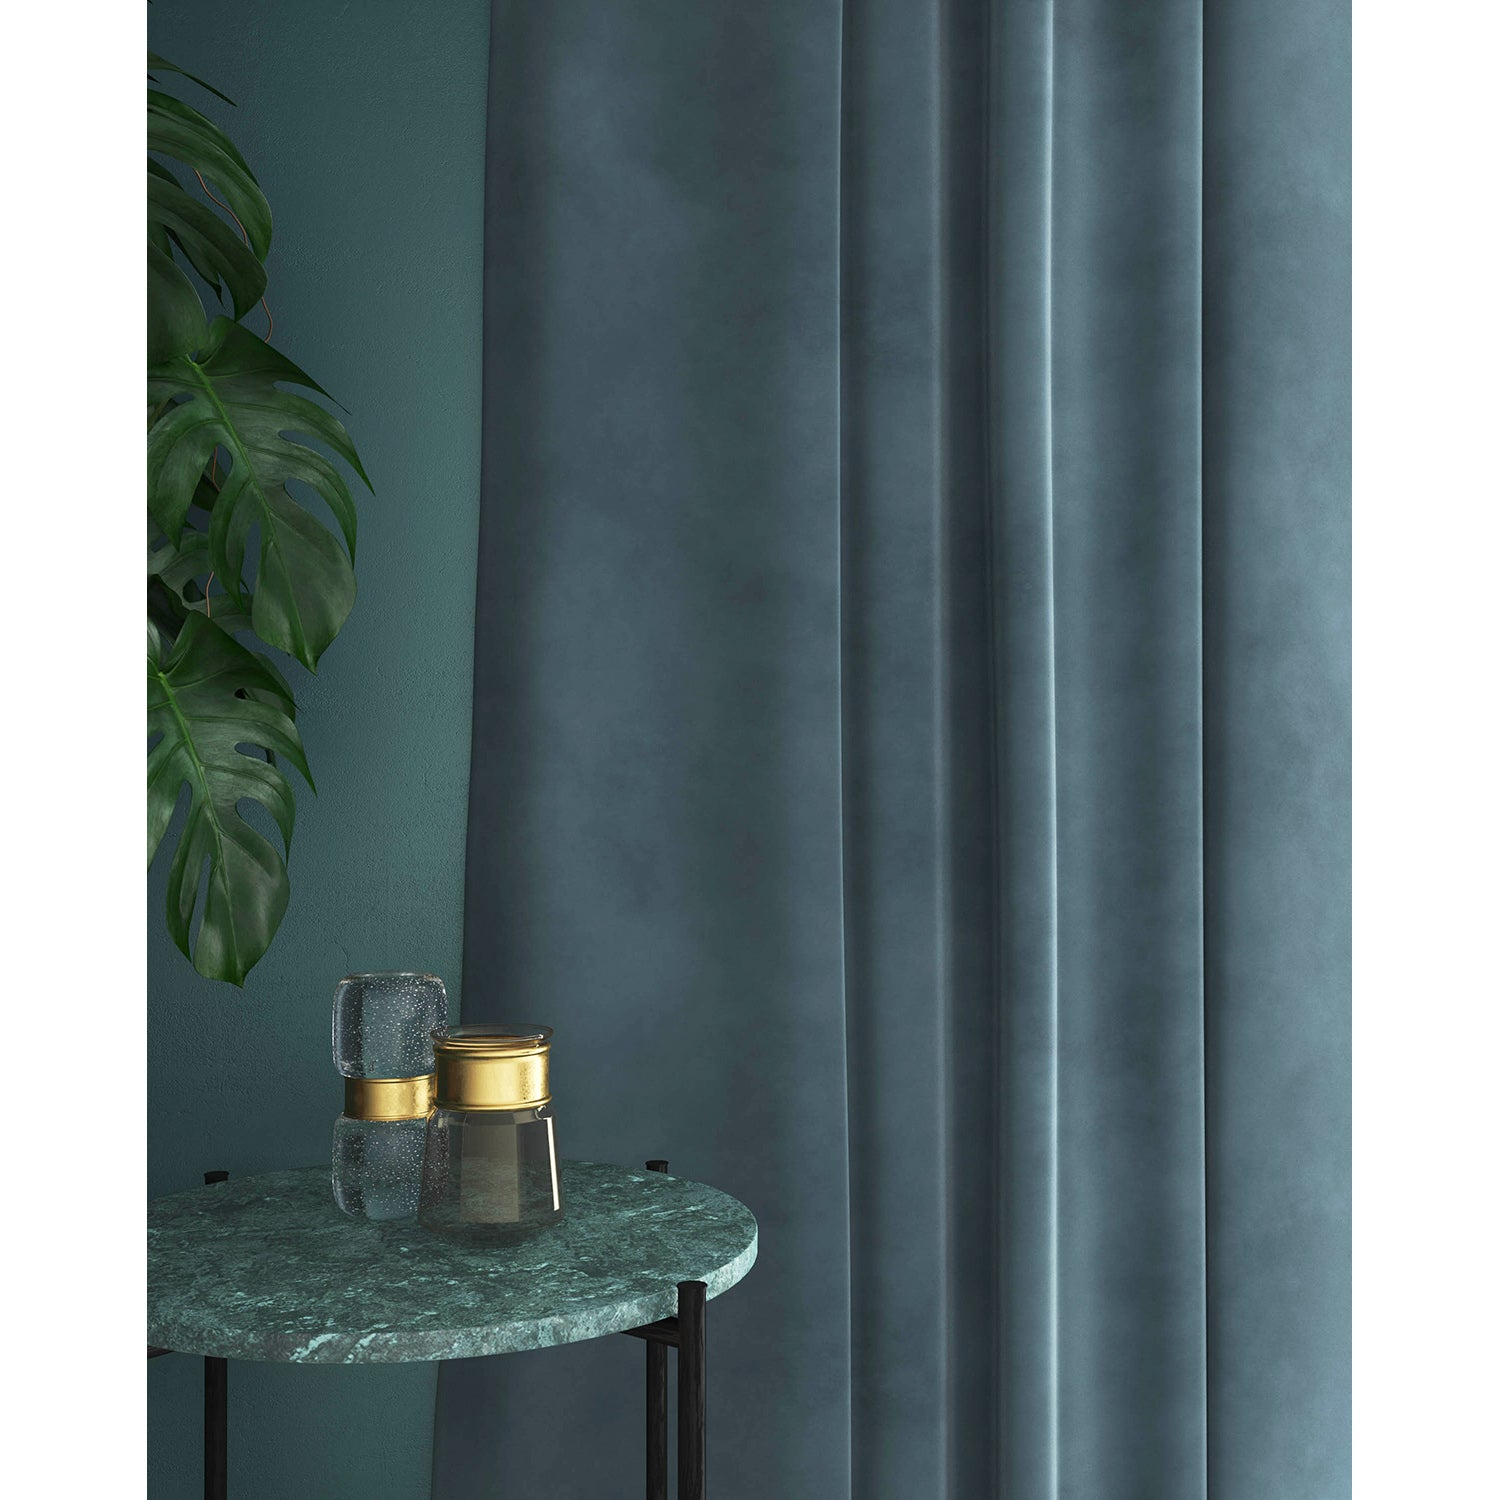 Curtains in a mid-blue plain velvet fabric with a stain resistant finish